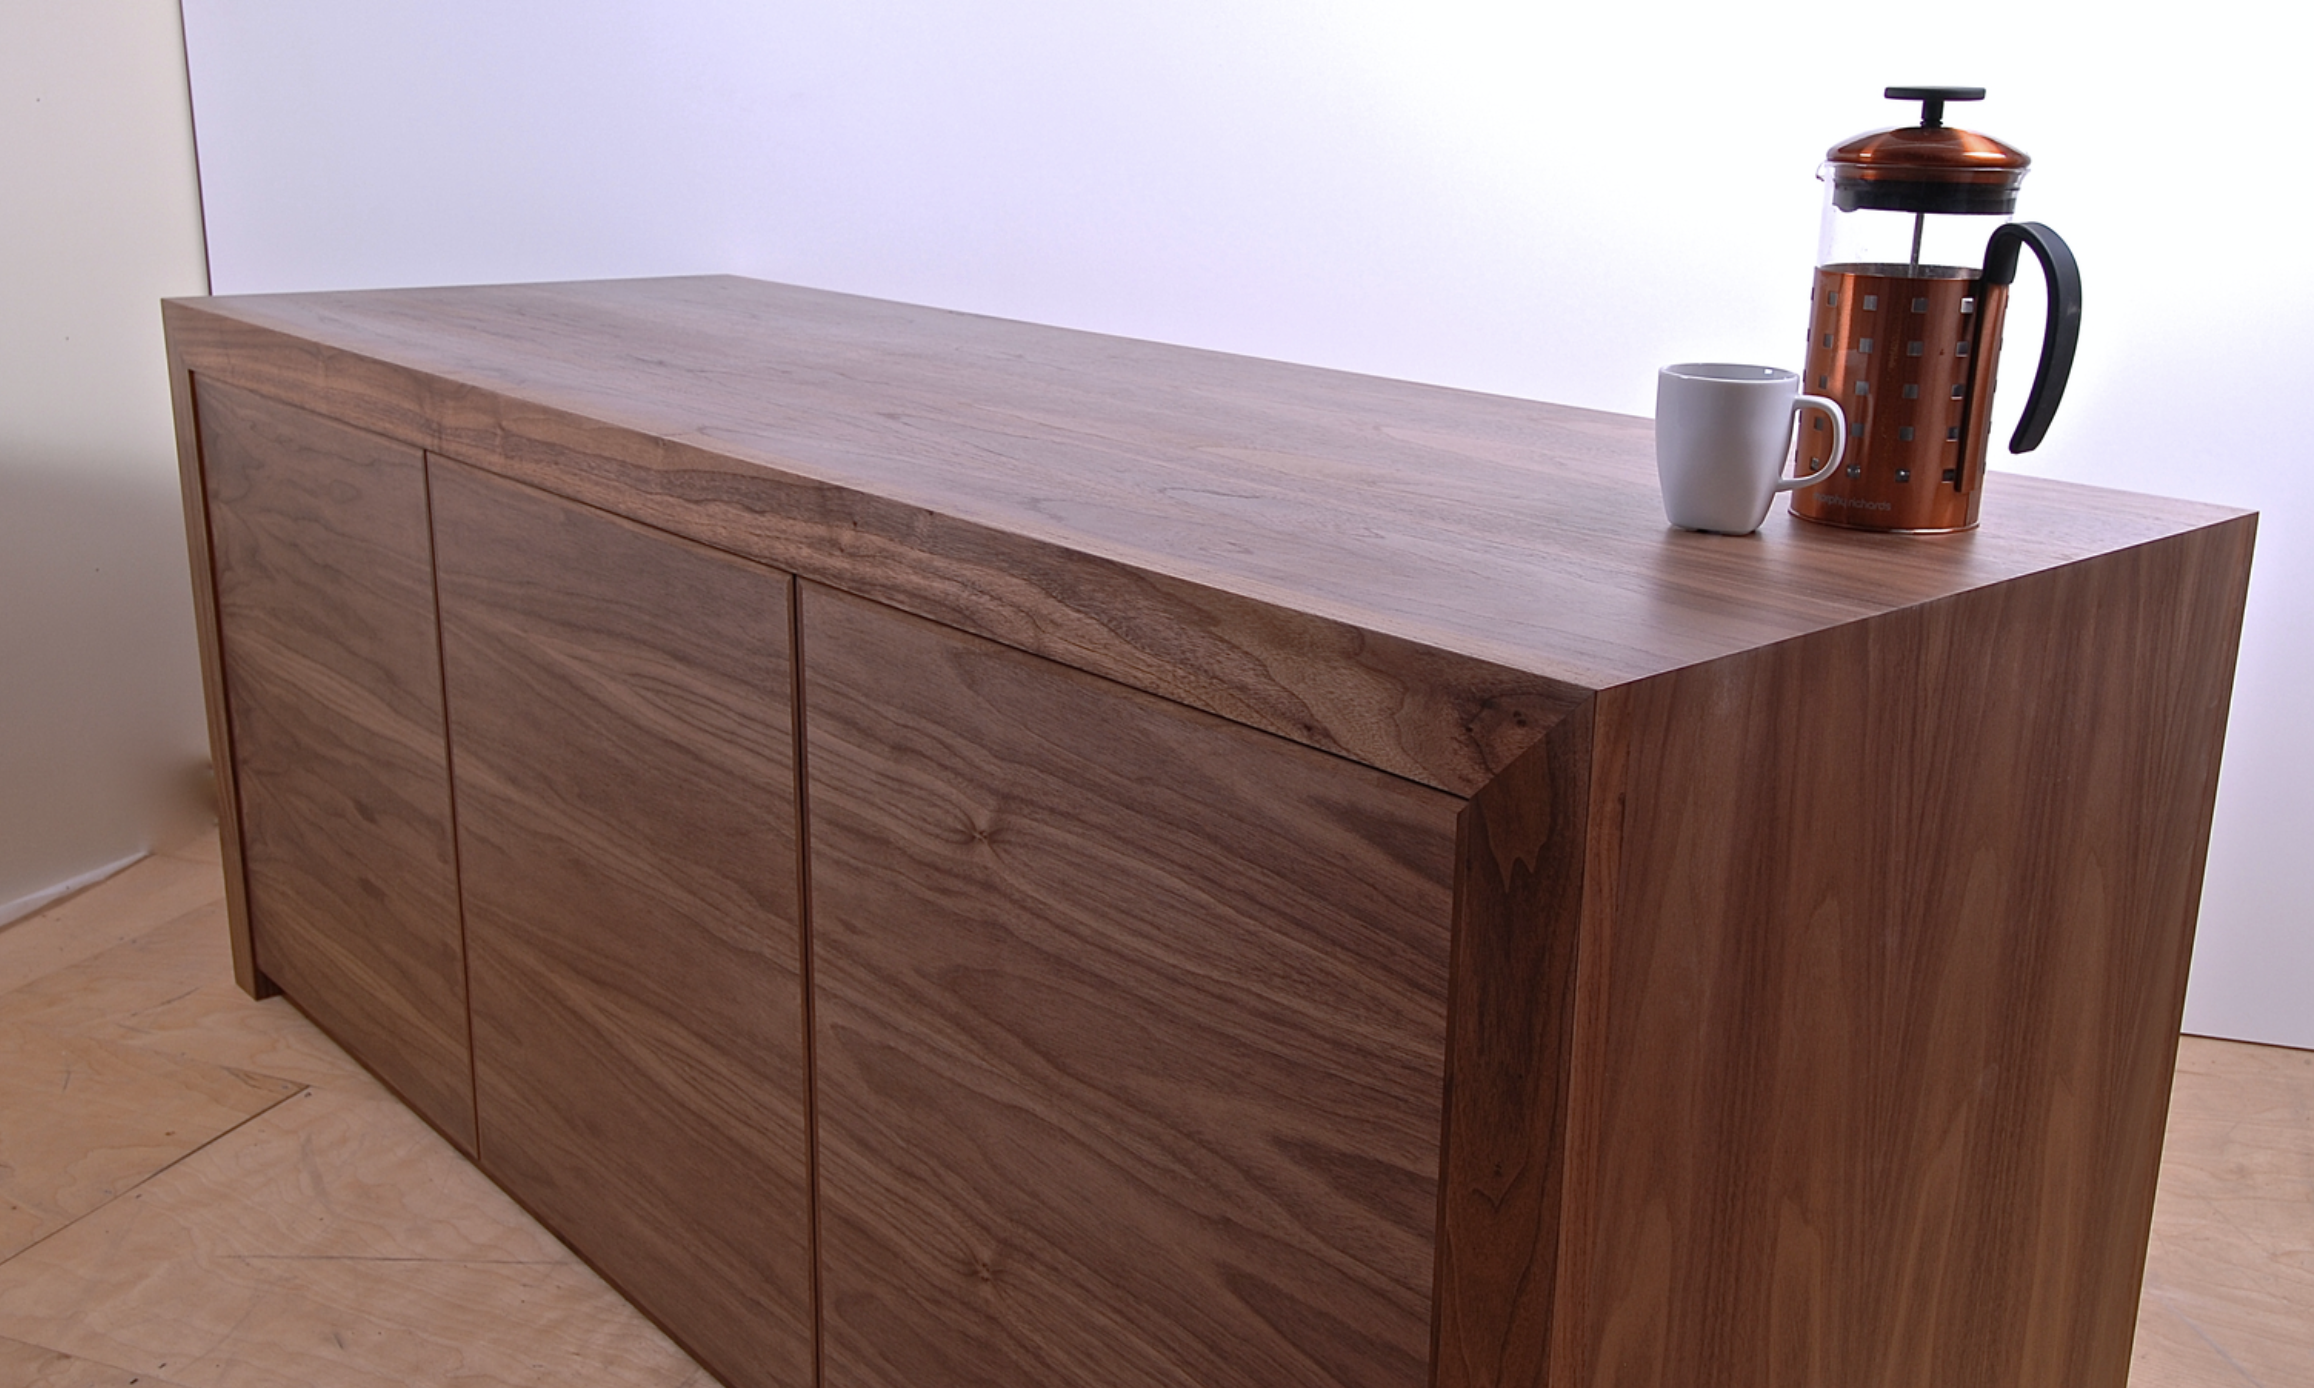 Leics-based Sealey Furniture made this modern walnut sideboard for a client's home. Around £2,000